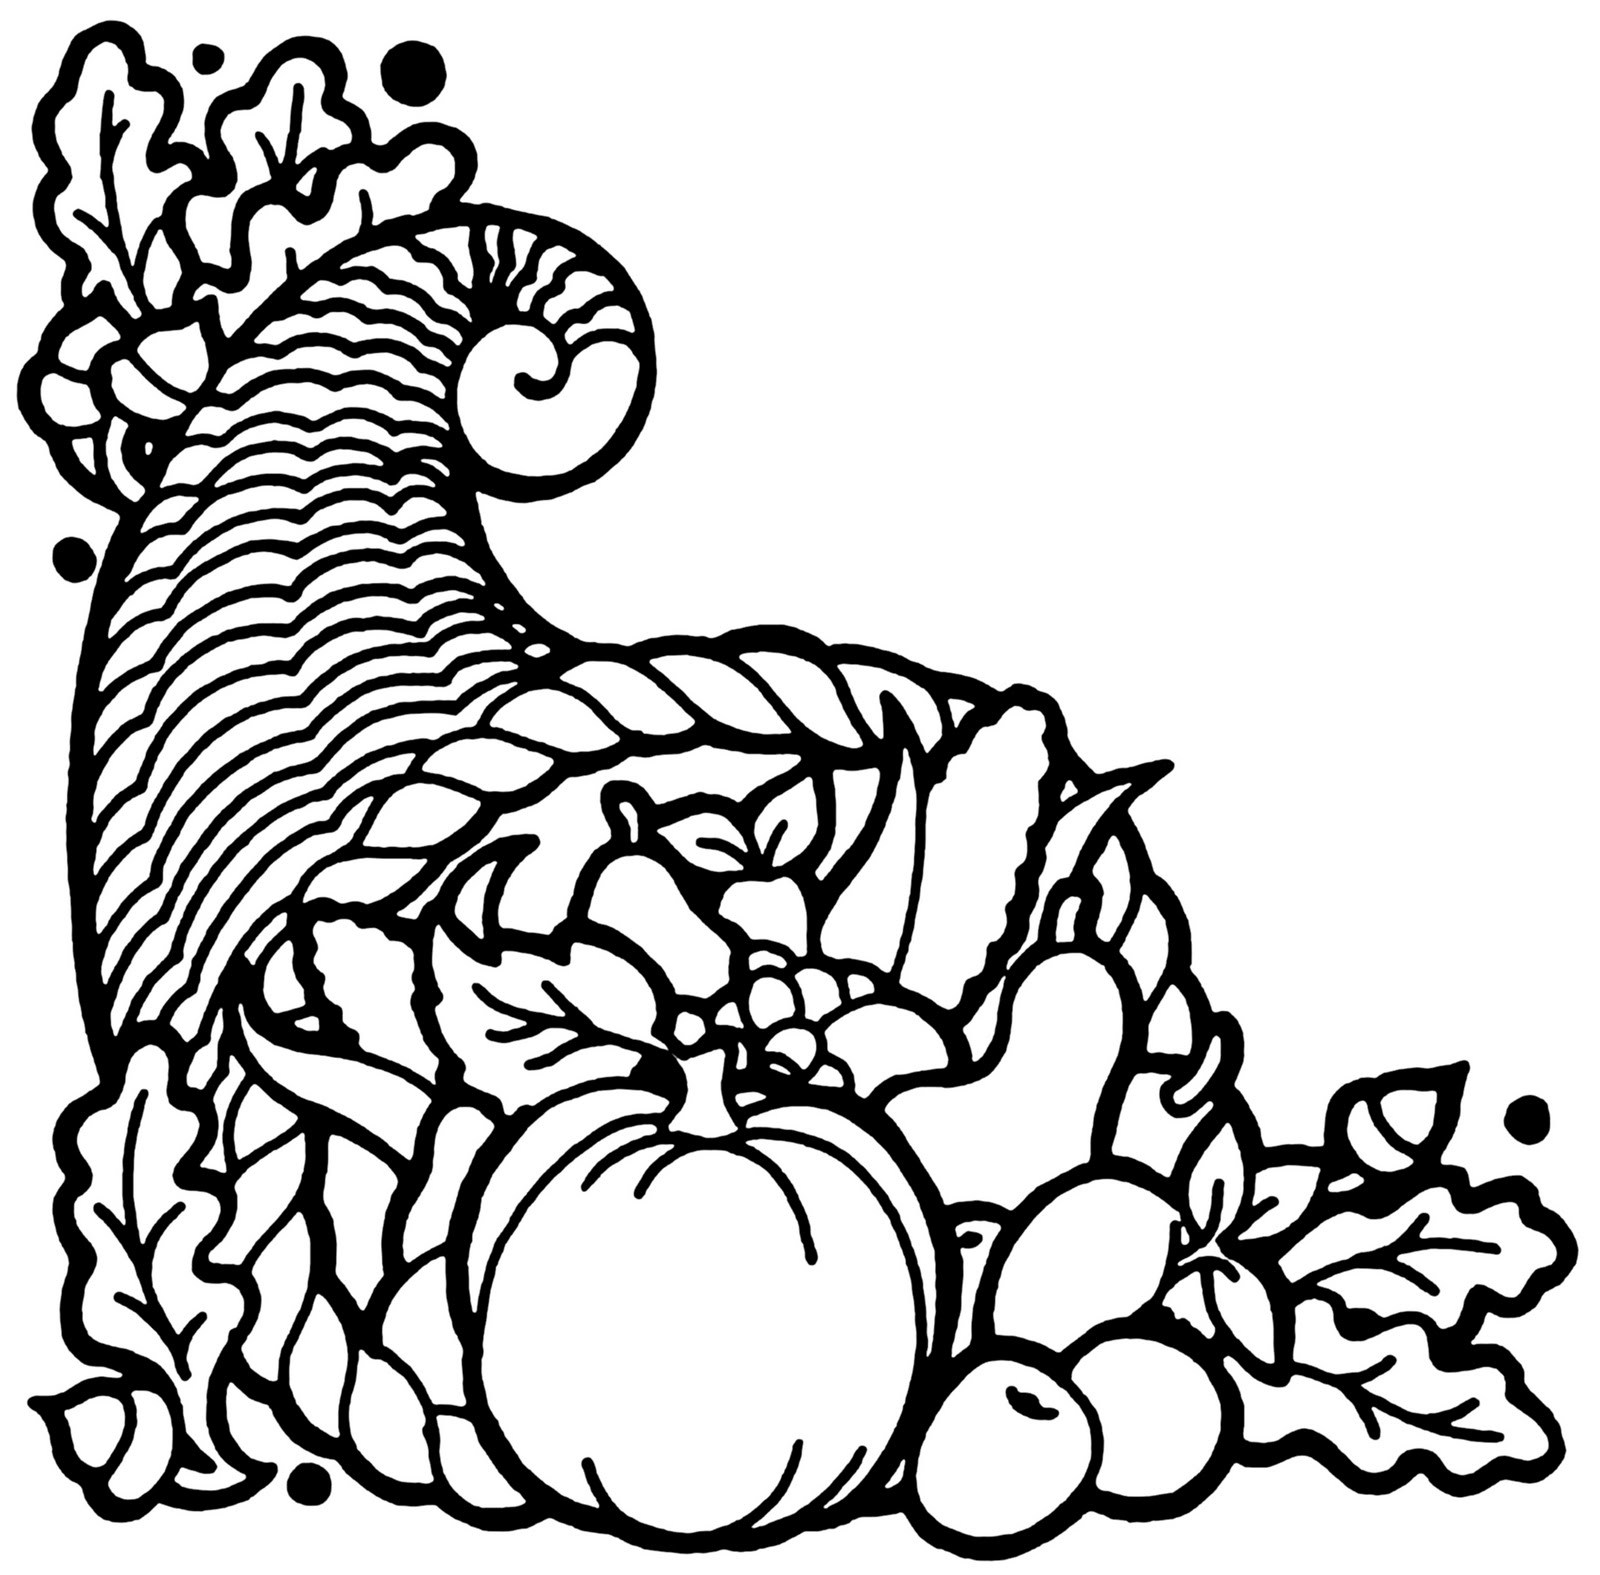 Thanksgiving clipart black and white 4 » Clipart Portal.